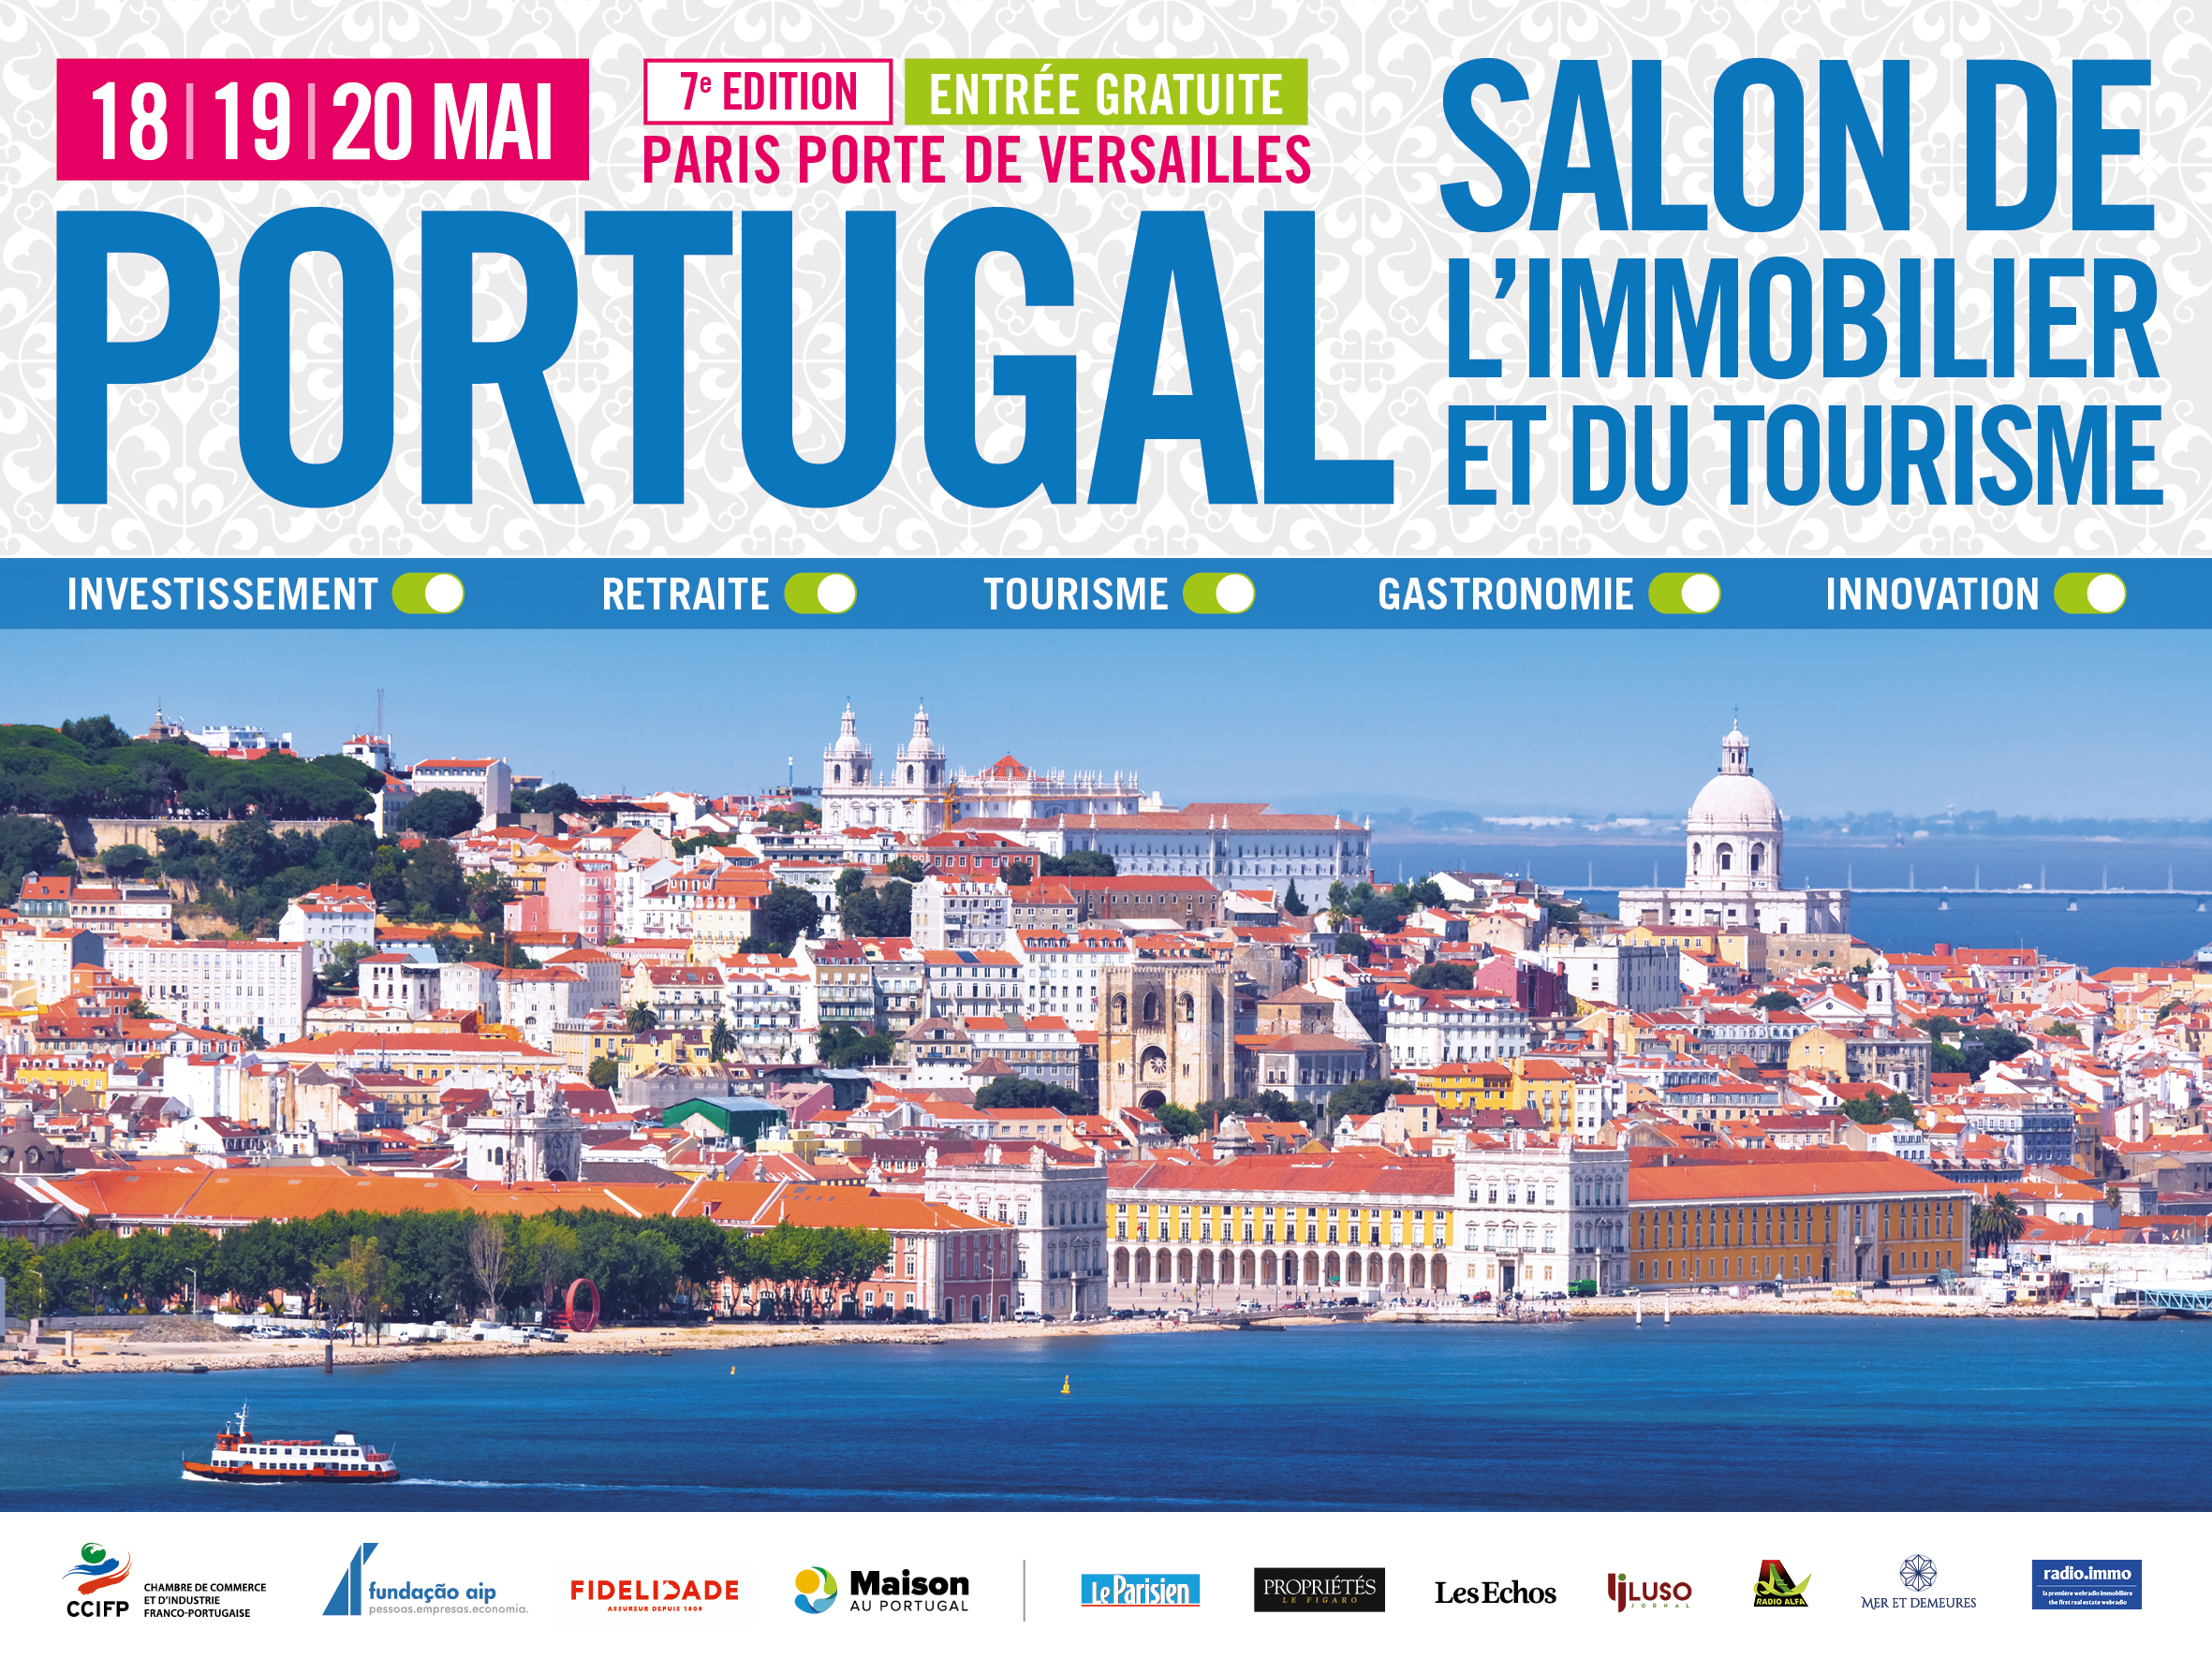 Septi me edition du salon de l 39 immobilier et du tourisme portugais paris - Salon immobilier portugal ...